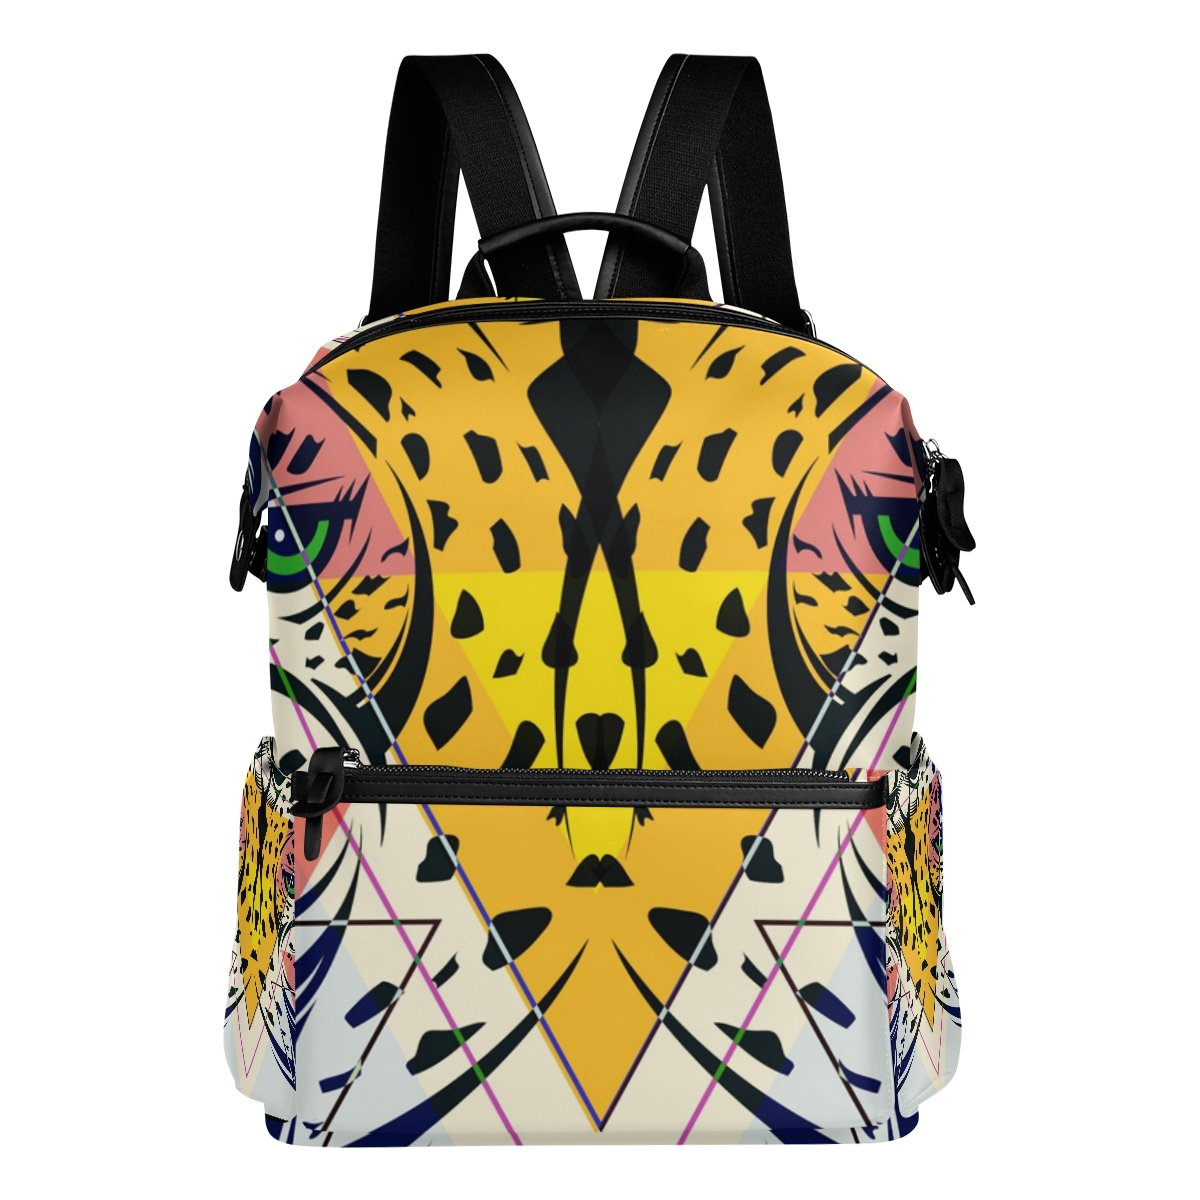 COOSUN Fashion Leopard Head School Rucksack Sac à Dos Voyage Multi